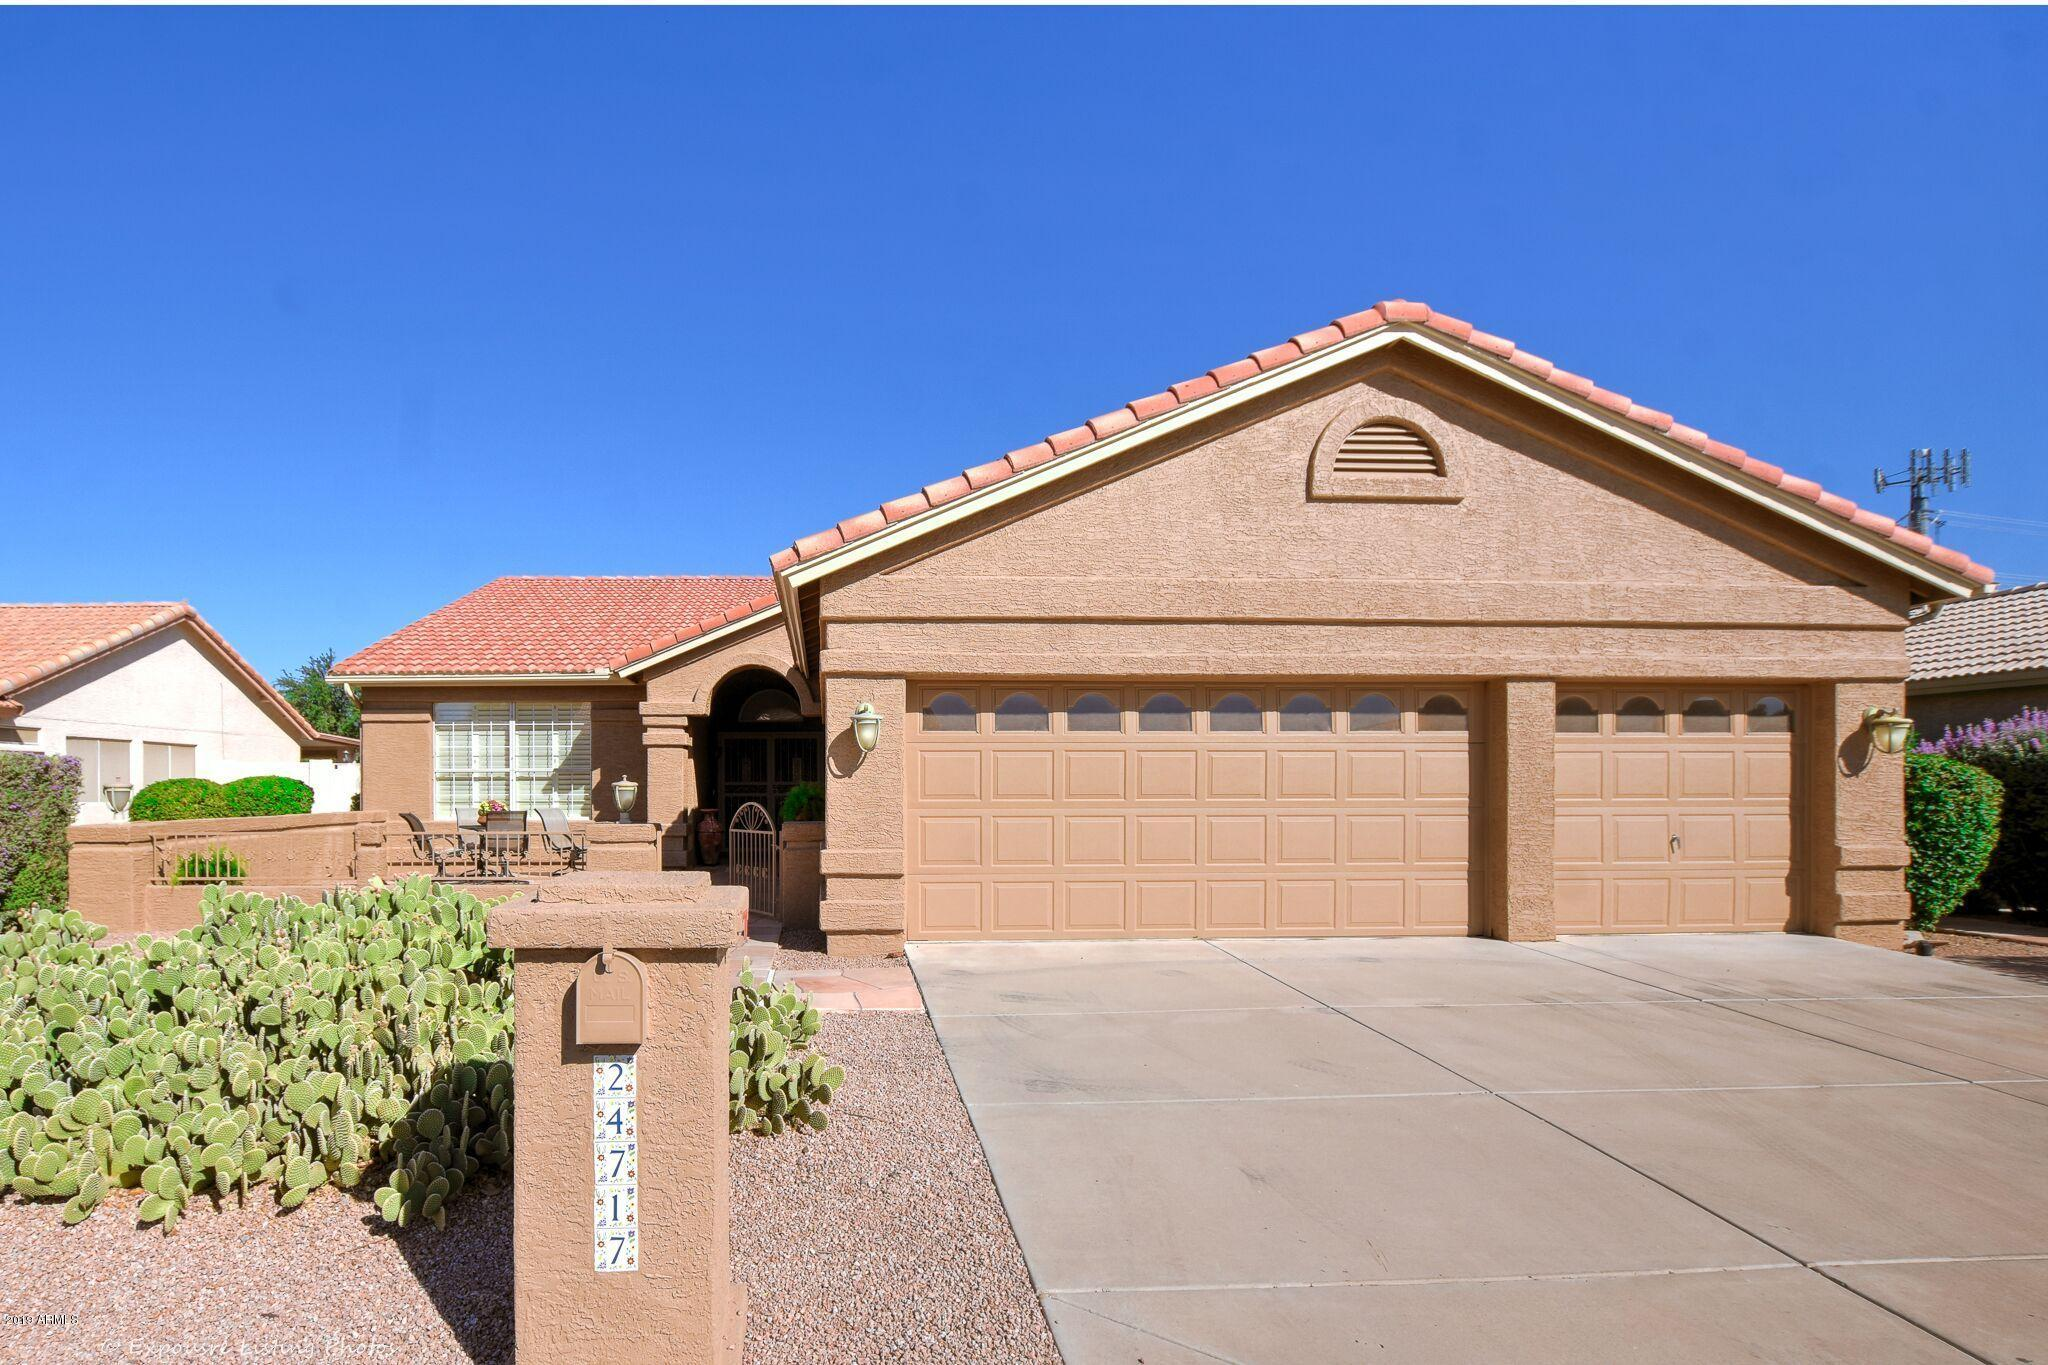 Photo for 24717 S Ontario Drive, Chandler, AZ 85248 (MLS # 5990343)